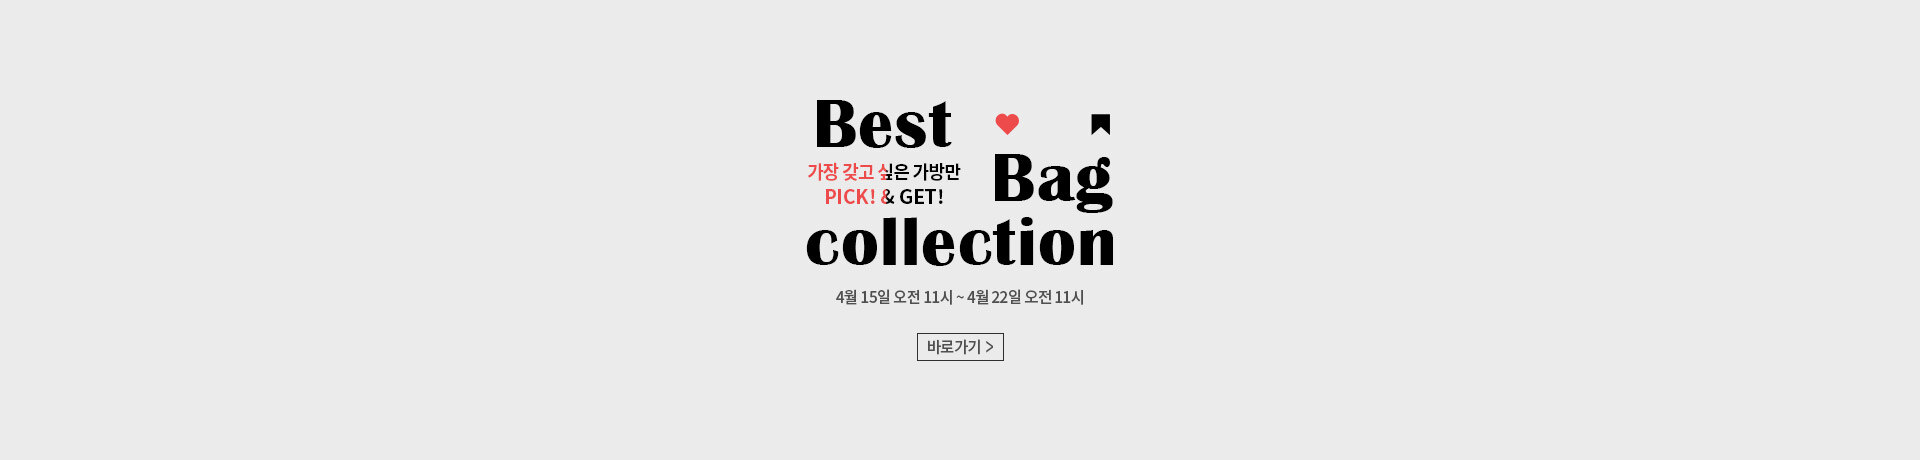 190415_ma_best-bag_pc-_ebebeb